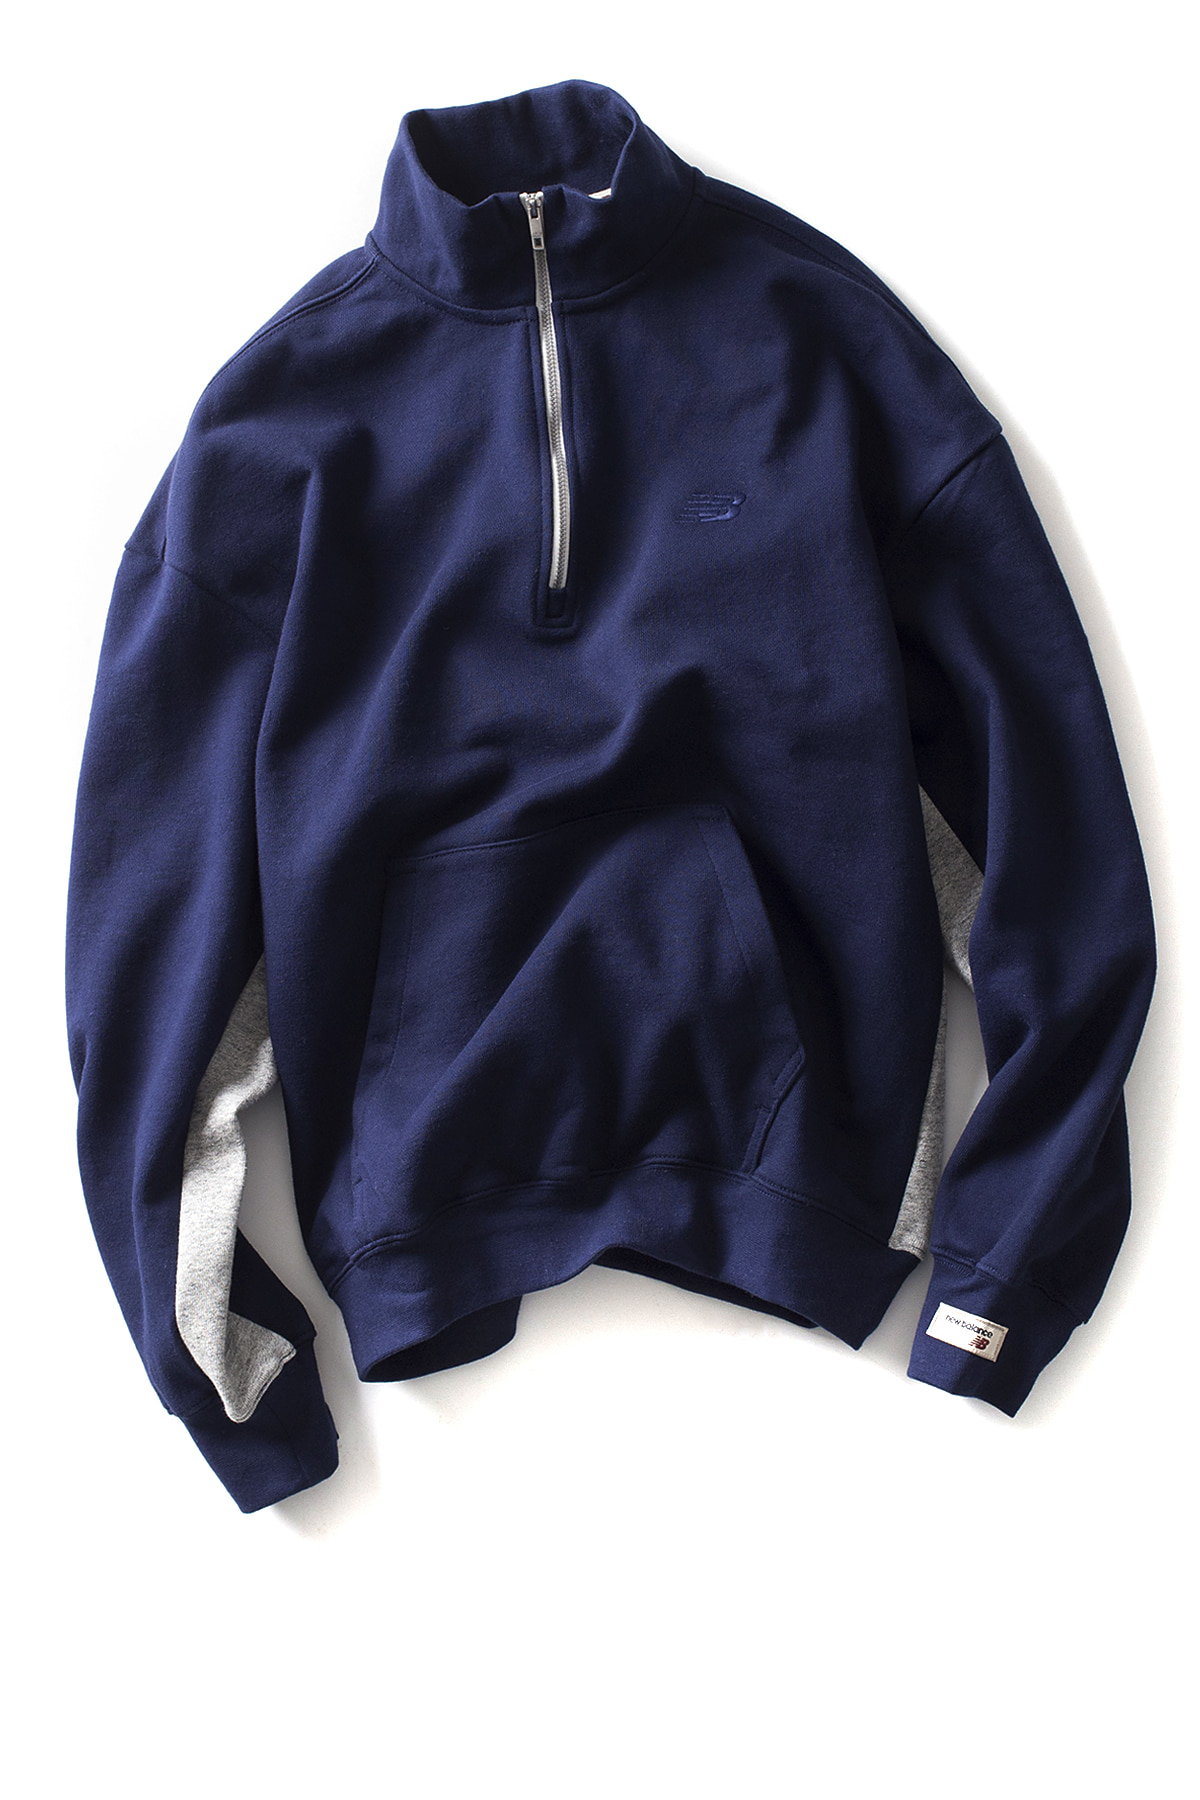 New Balance : UNI CLASSIC HALF ZIP UP MTM (Navy)